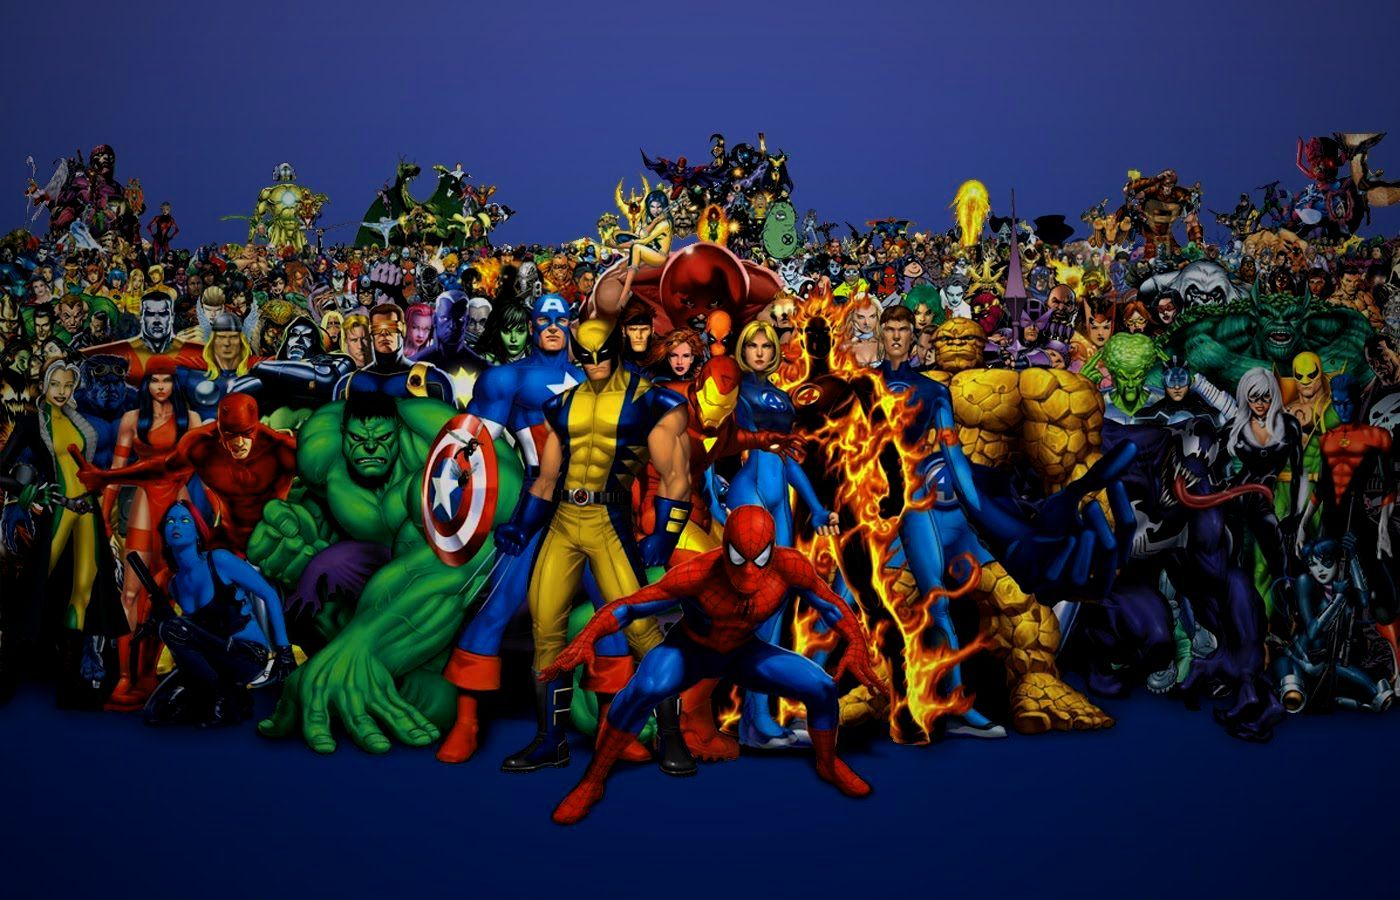 Hd Wallpapers Marvel Characters Cartoon Anime Wallpaper